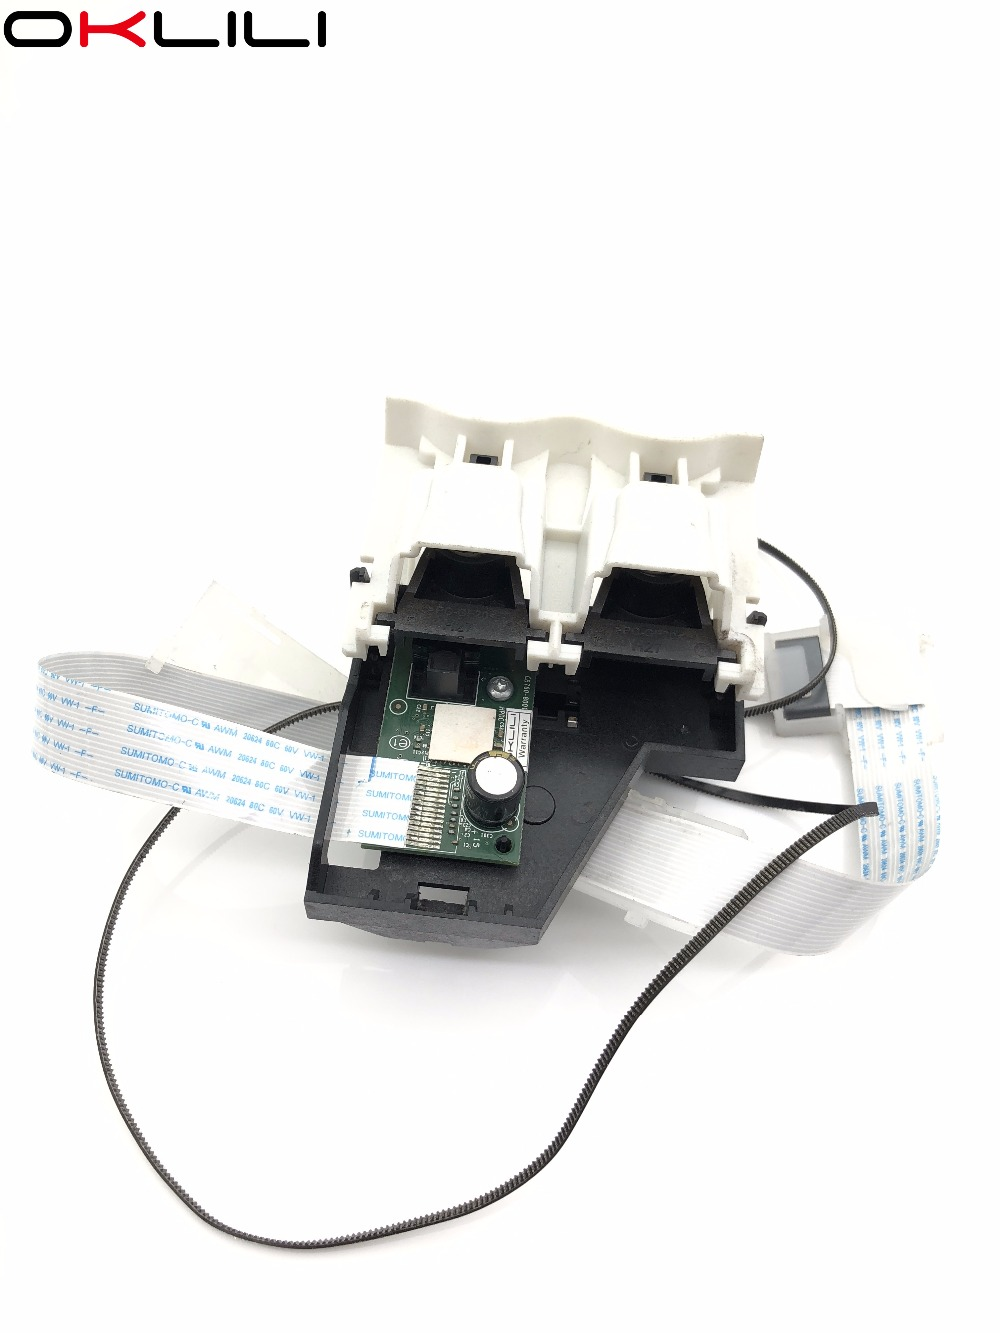 5PCX 802 802XL Carriage Unit Assembly for HP DeskJet 1000 1010 1050 1051 1055 1510 1512 2000 2010 2050 2060 2510 2540 3000 3050 2pcs ink cartridge compatible for hp 122 xl for hp deskjet 1000 1050 2000 2050 2050s 3000 3050a 3052a 3054 1010 1510 2540